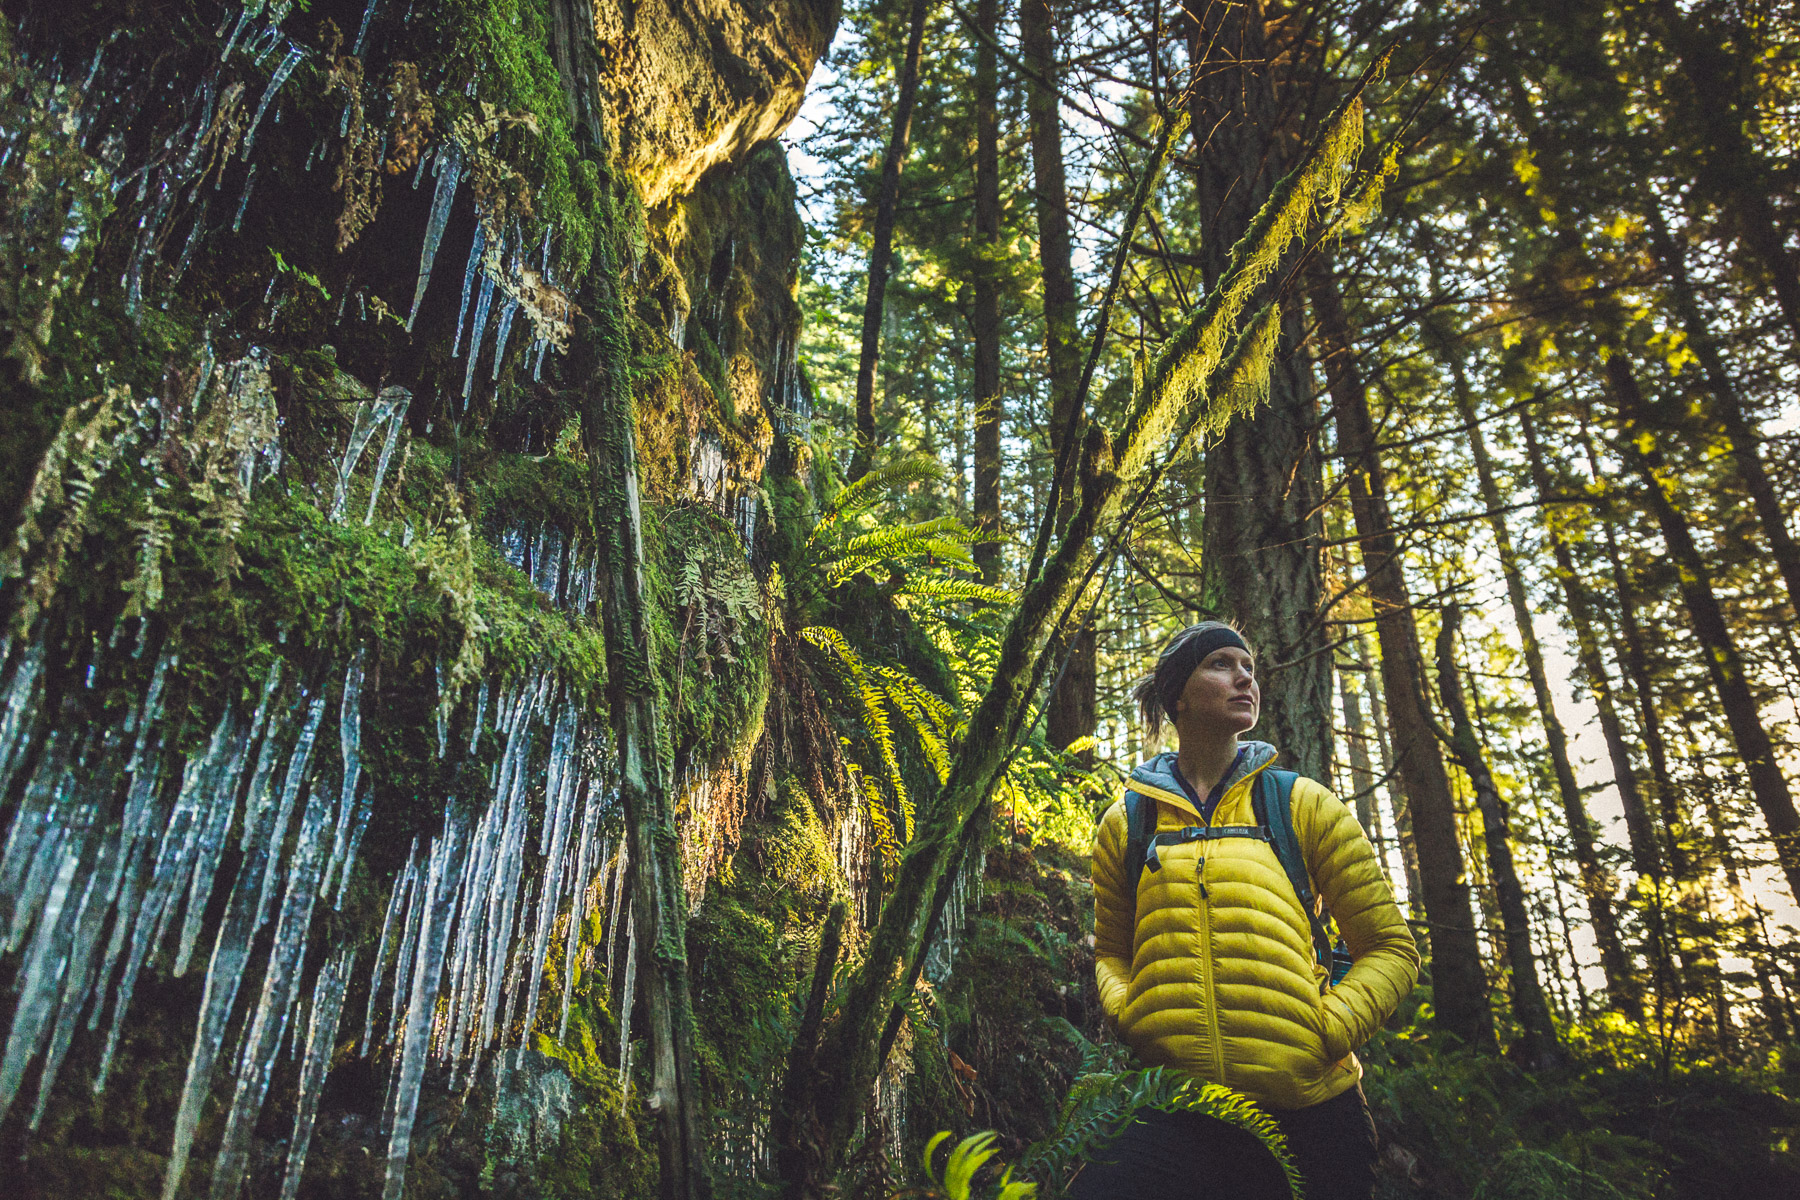 Pacific Northwest Outdoor Portraits in the Rainforest